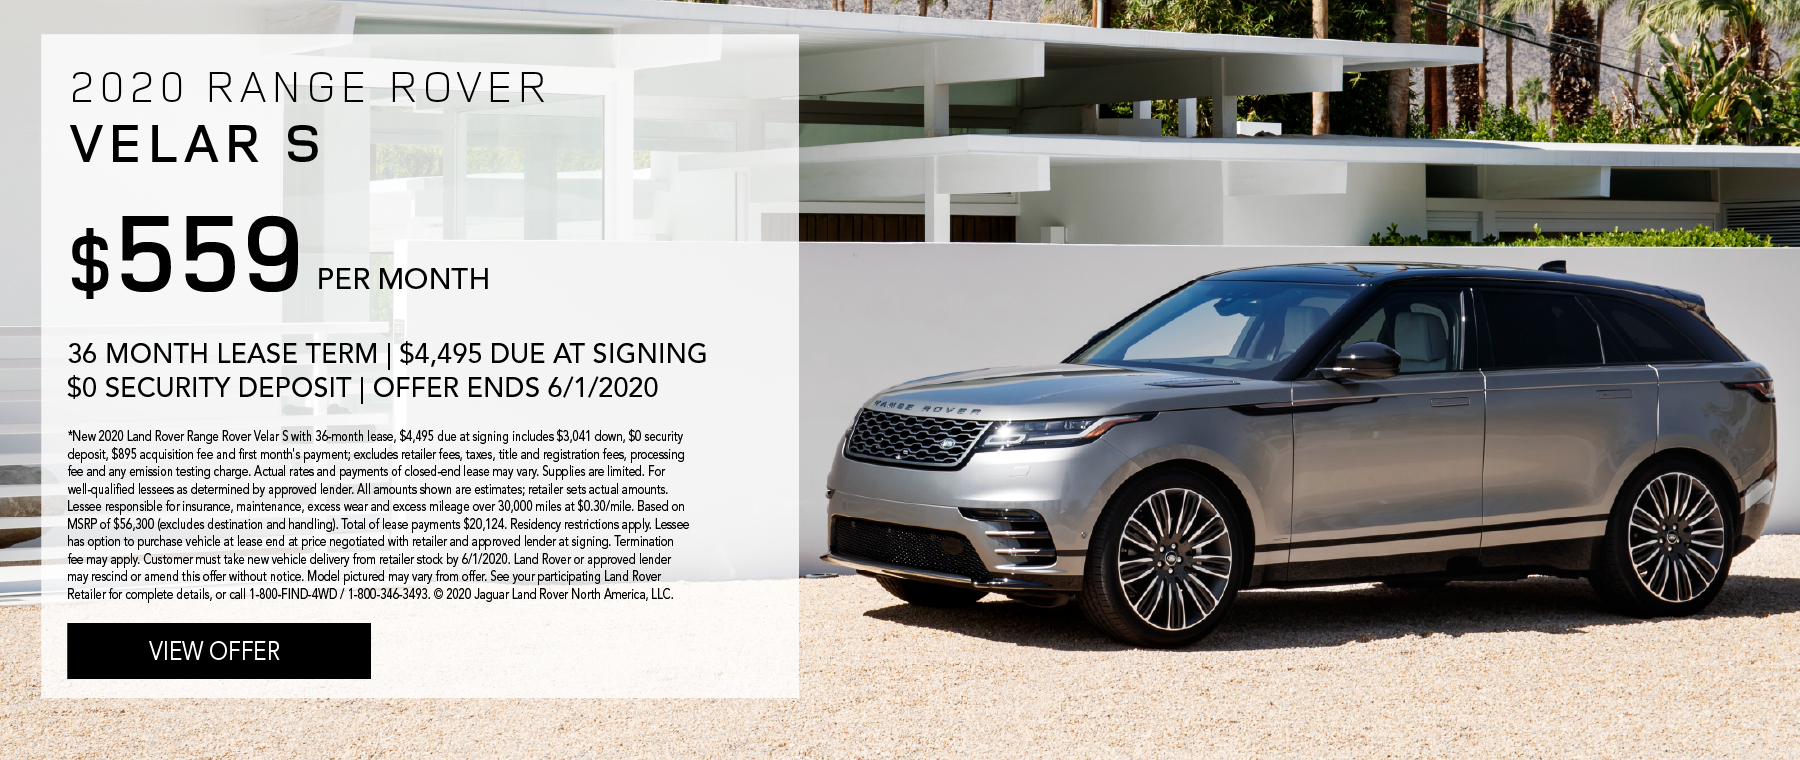 2020 RANGE ROVER VELAR S. $559 PER MONTH. 36 MONTH LEASE TERM. $4,495 CASH DUE AT SIGNING. $0 SECURITY DEPOSIT. 10,000 MILES PER YEAR. EXCLUDES RETAILER FEES, TAXES, TITLE AND REGISTRATION FEES, PROCESSING FEE AND ANY EMISSION TESTING CHARGE. OFFER ENDS 6/1/2020.